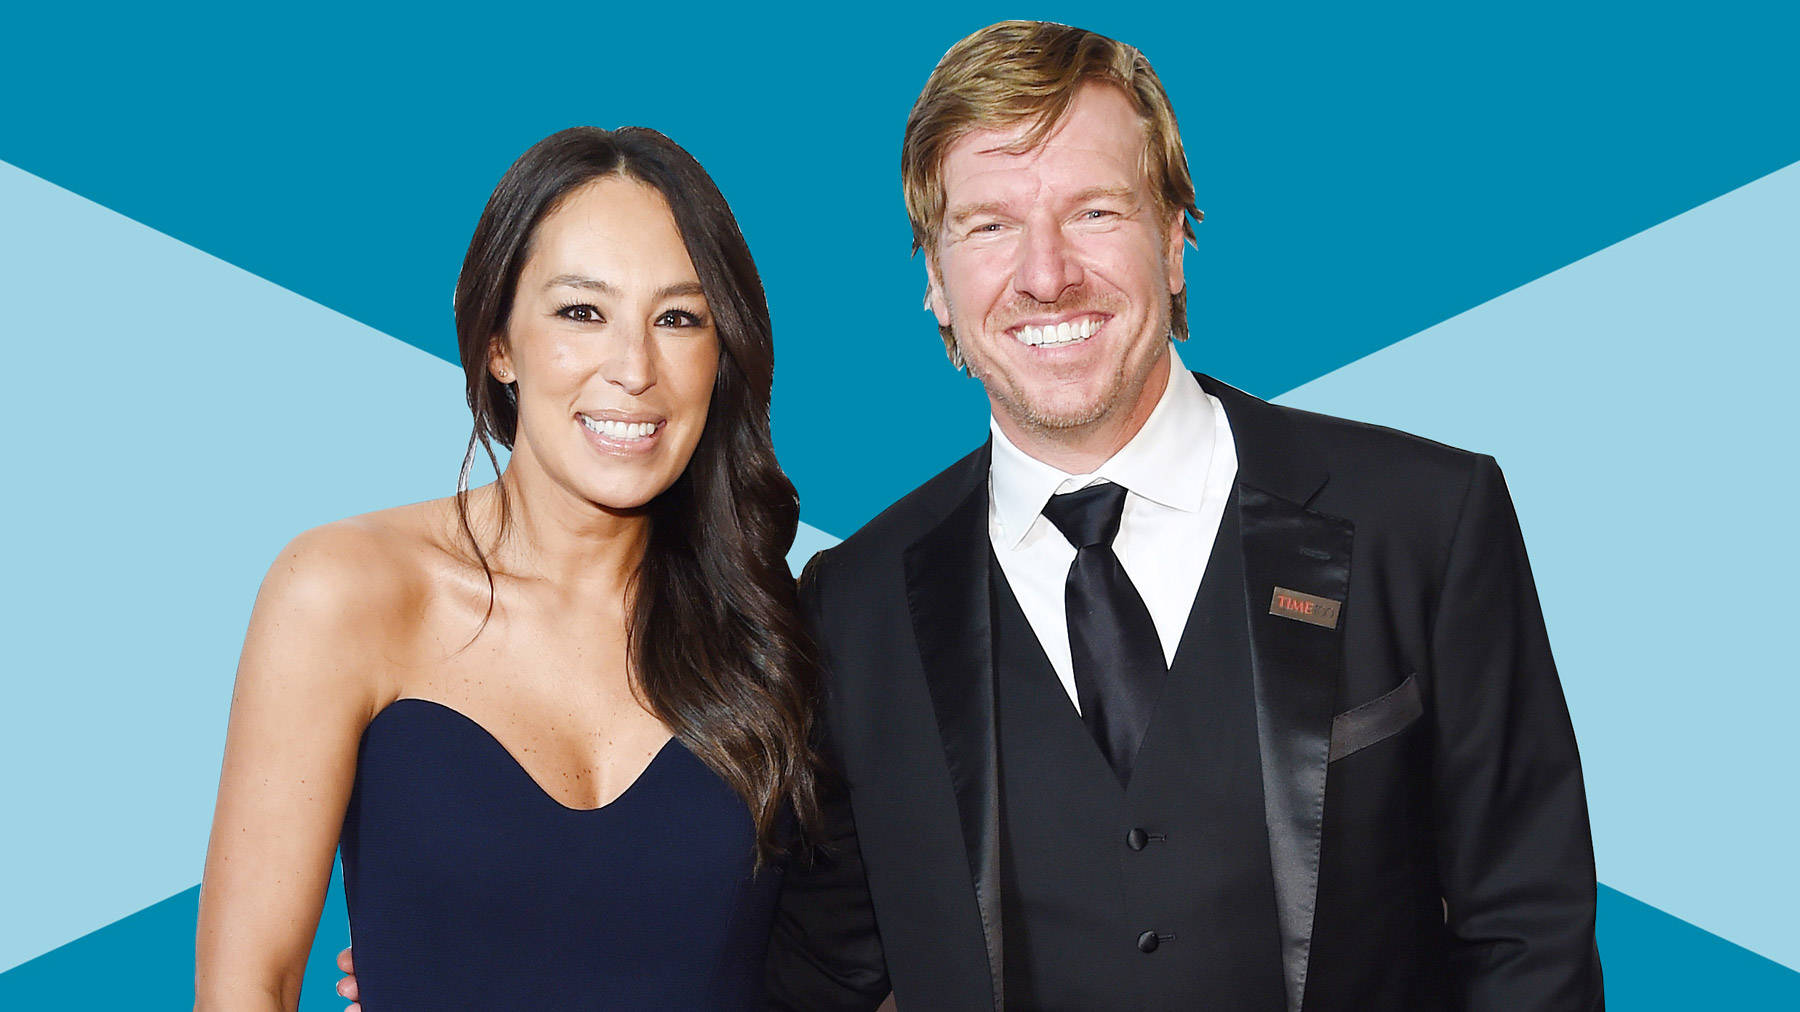 How Chip and Joanna Gaines Are Making It Easier to Spread Kindness